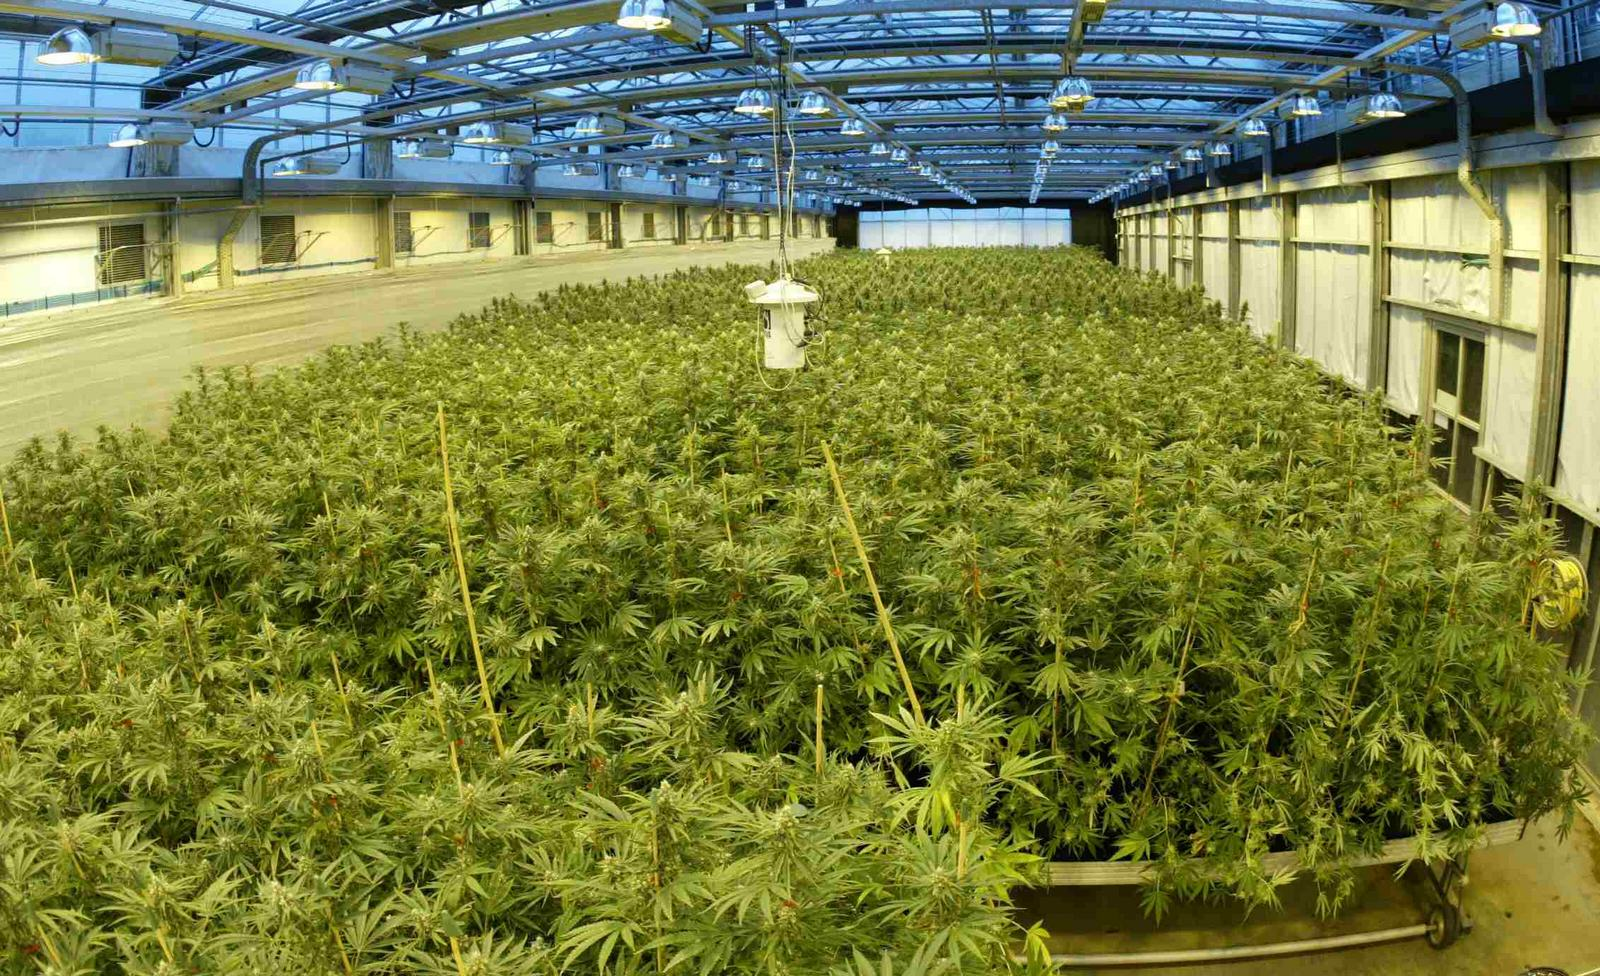 Les m dicaments base de cannabis autoris s en france for Cannabis plantation interieur